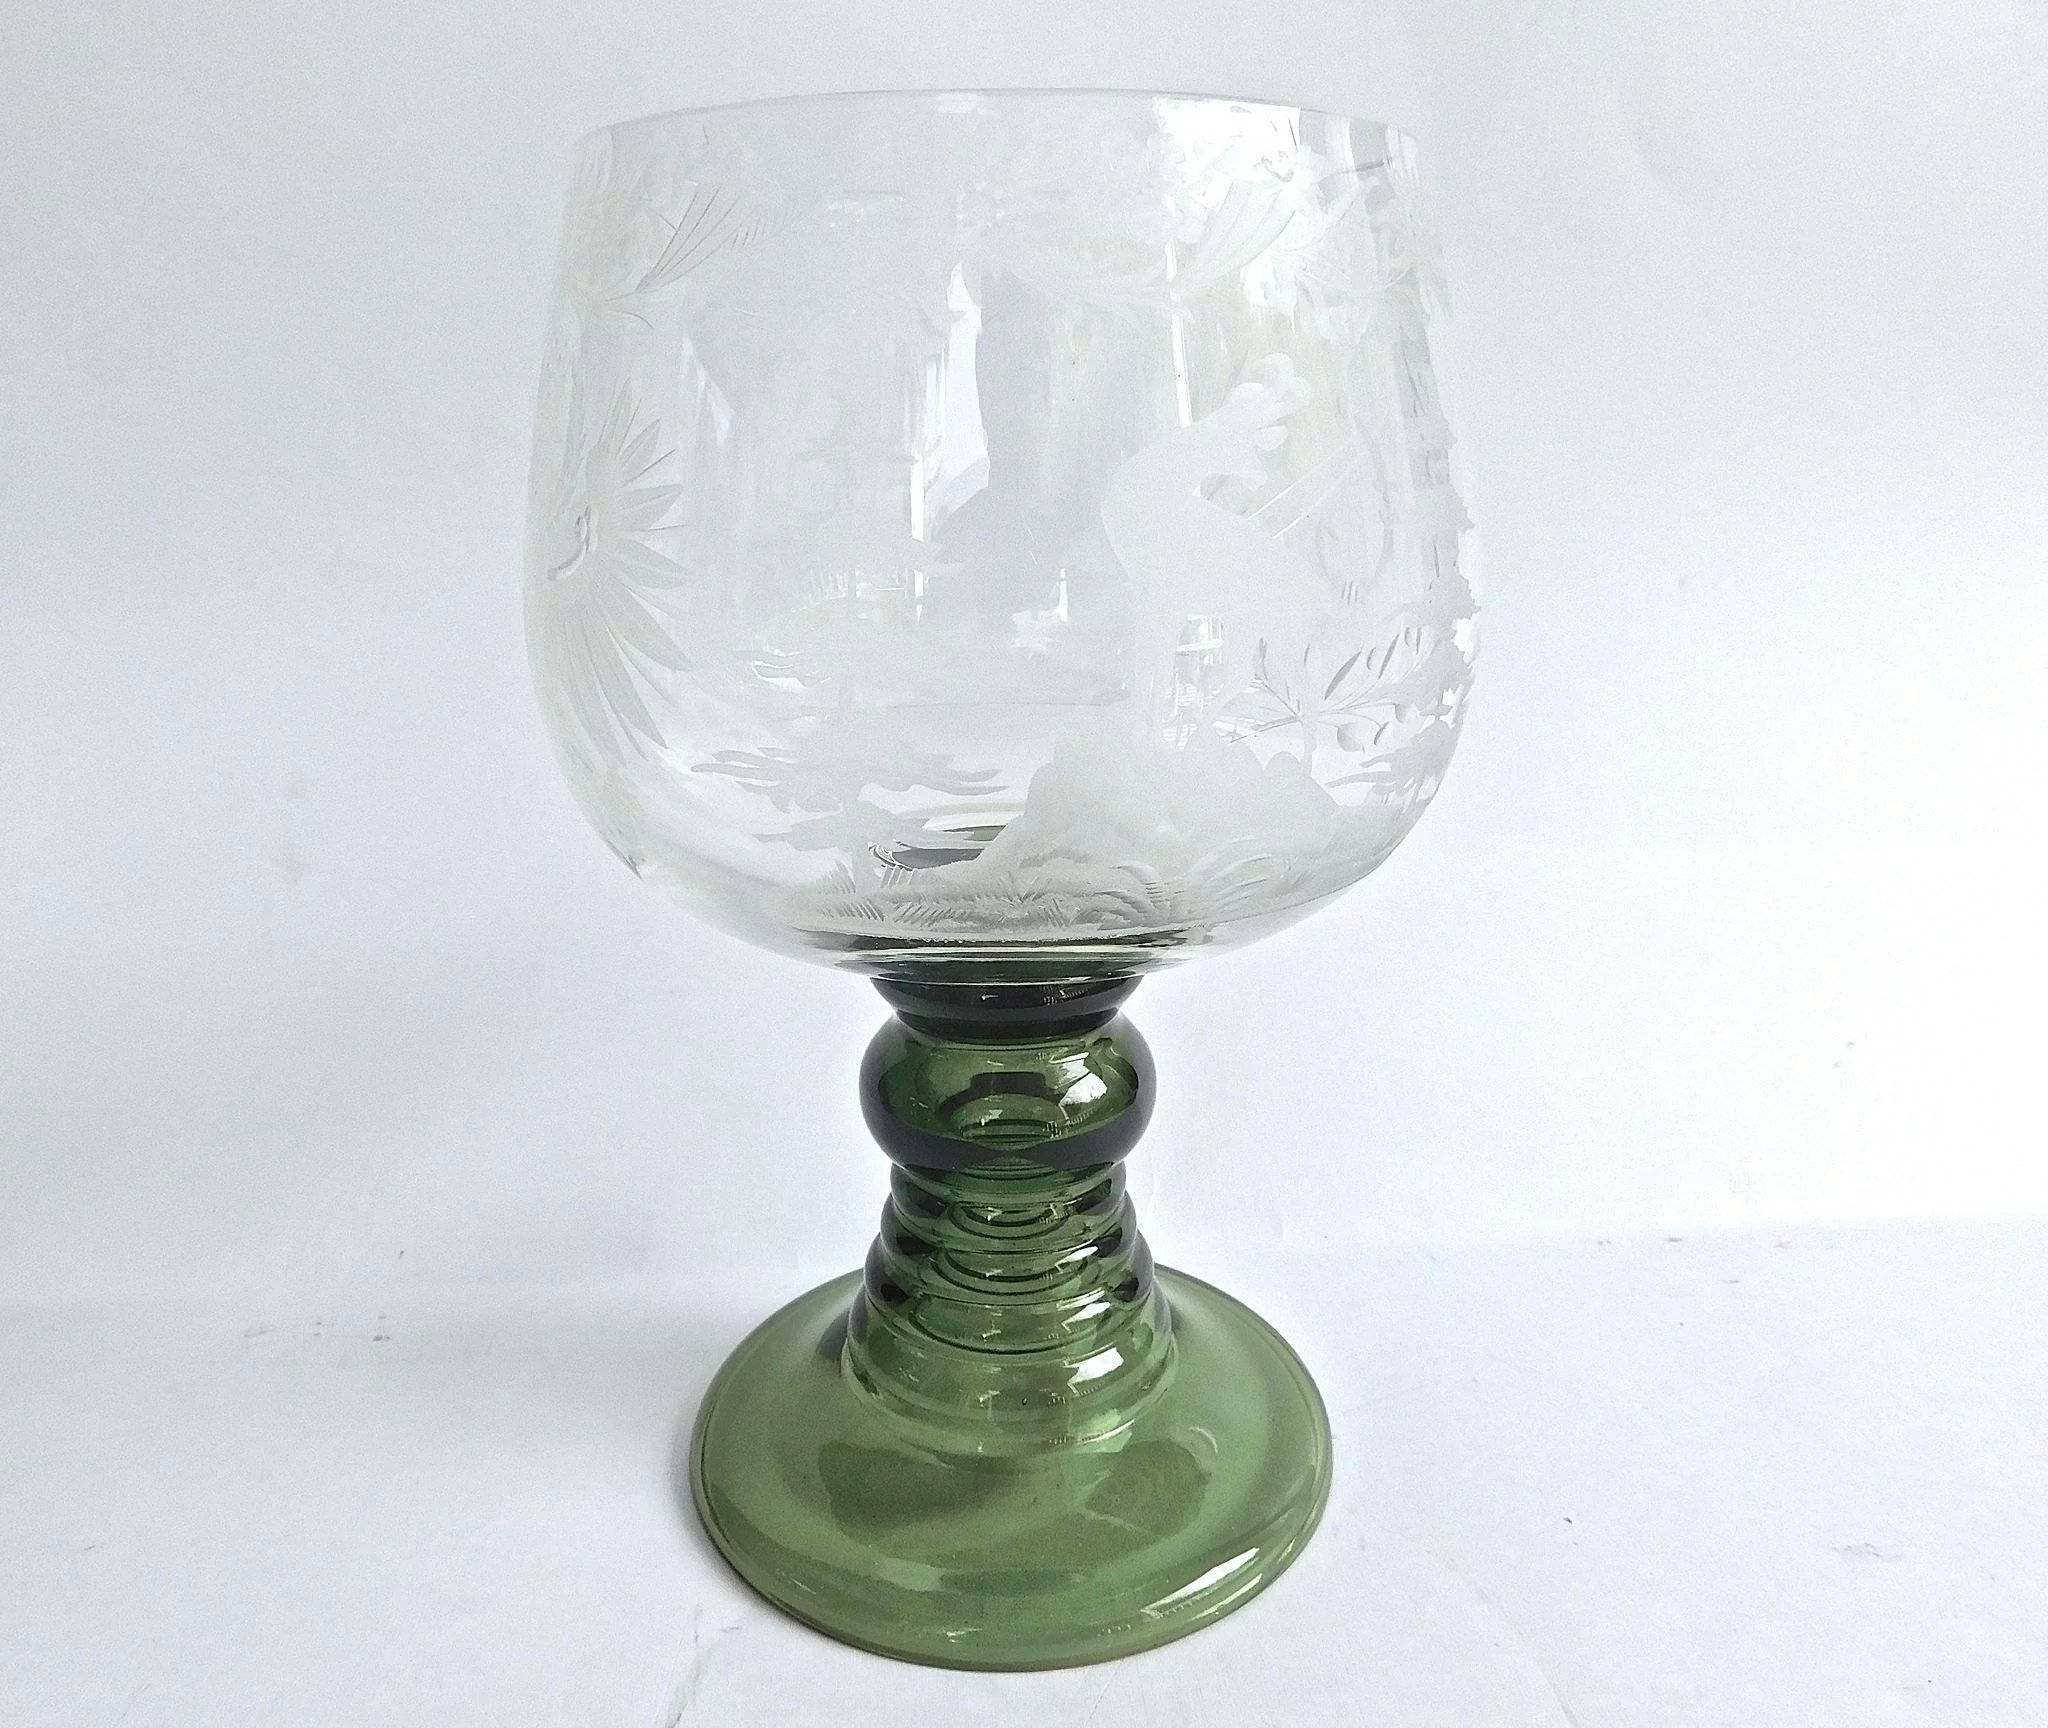 purses art ribbed vase glass lane kitchengarden pic item clear trapezoid deco f ruby